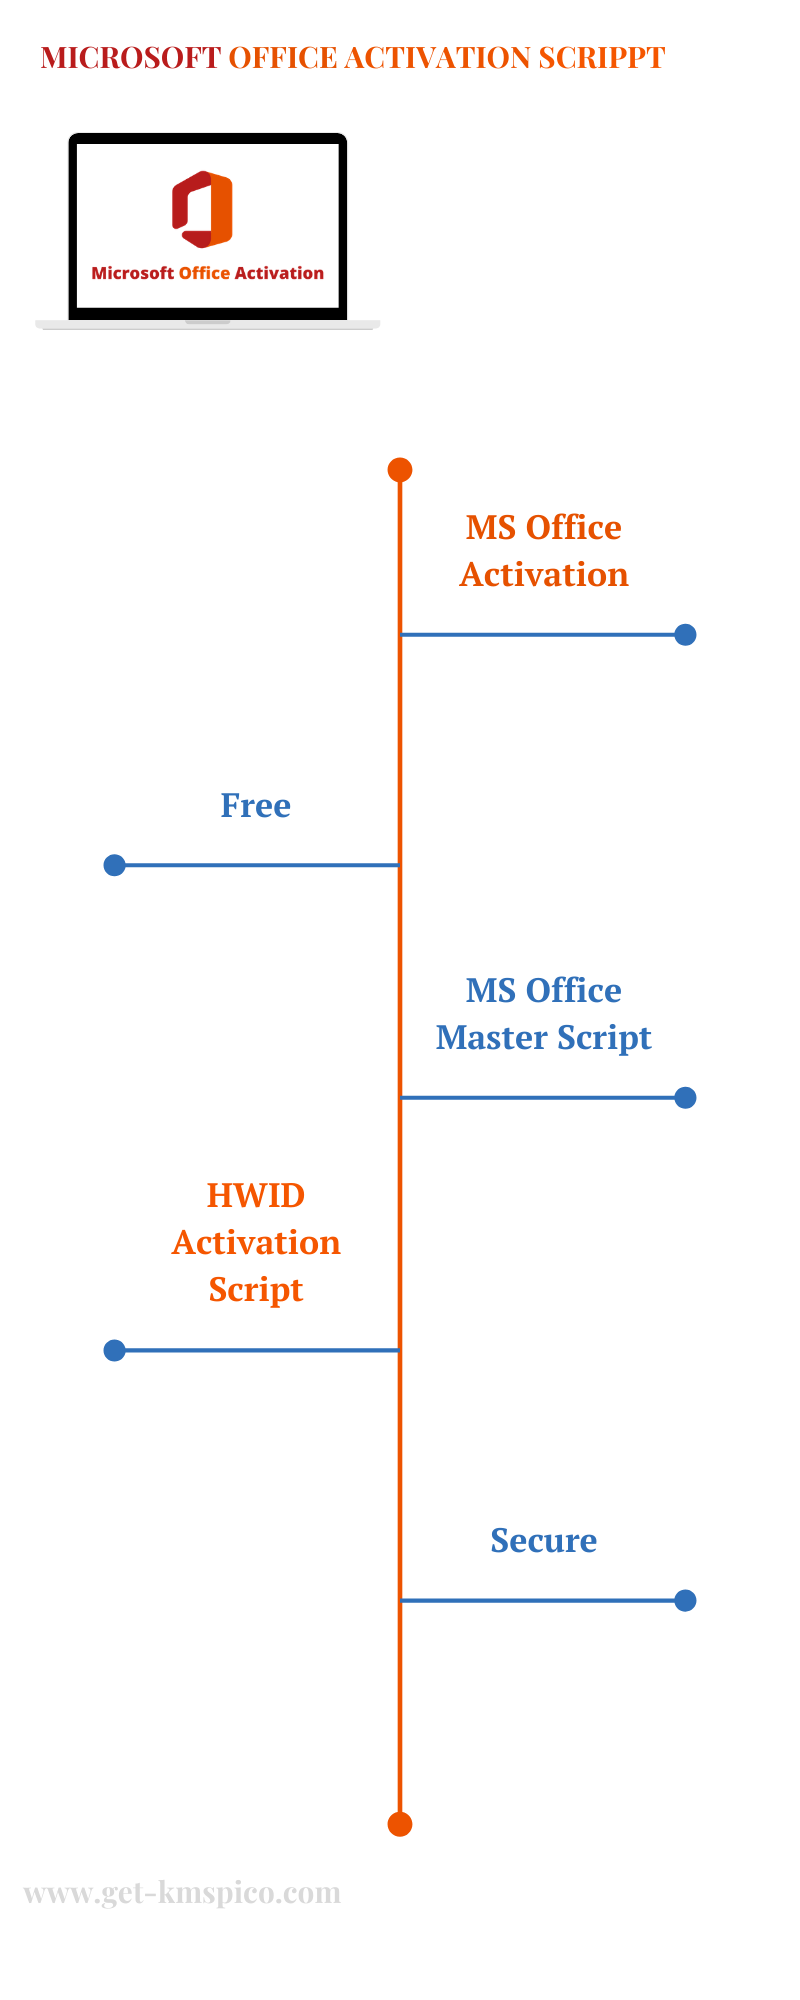 Microsoft-Office-Activation-Script-Infographic